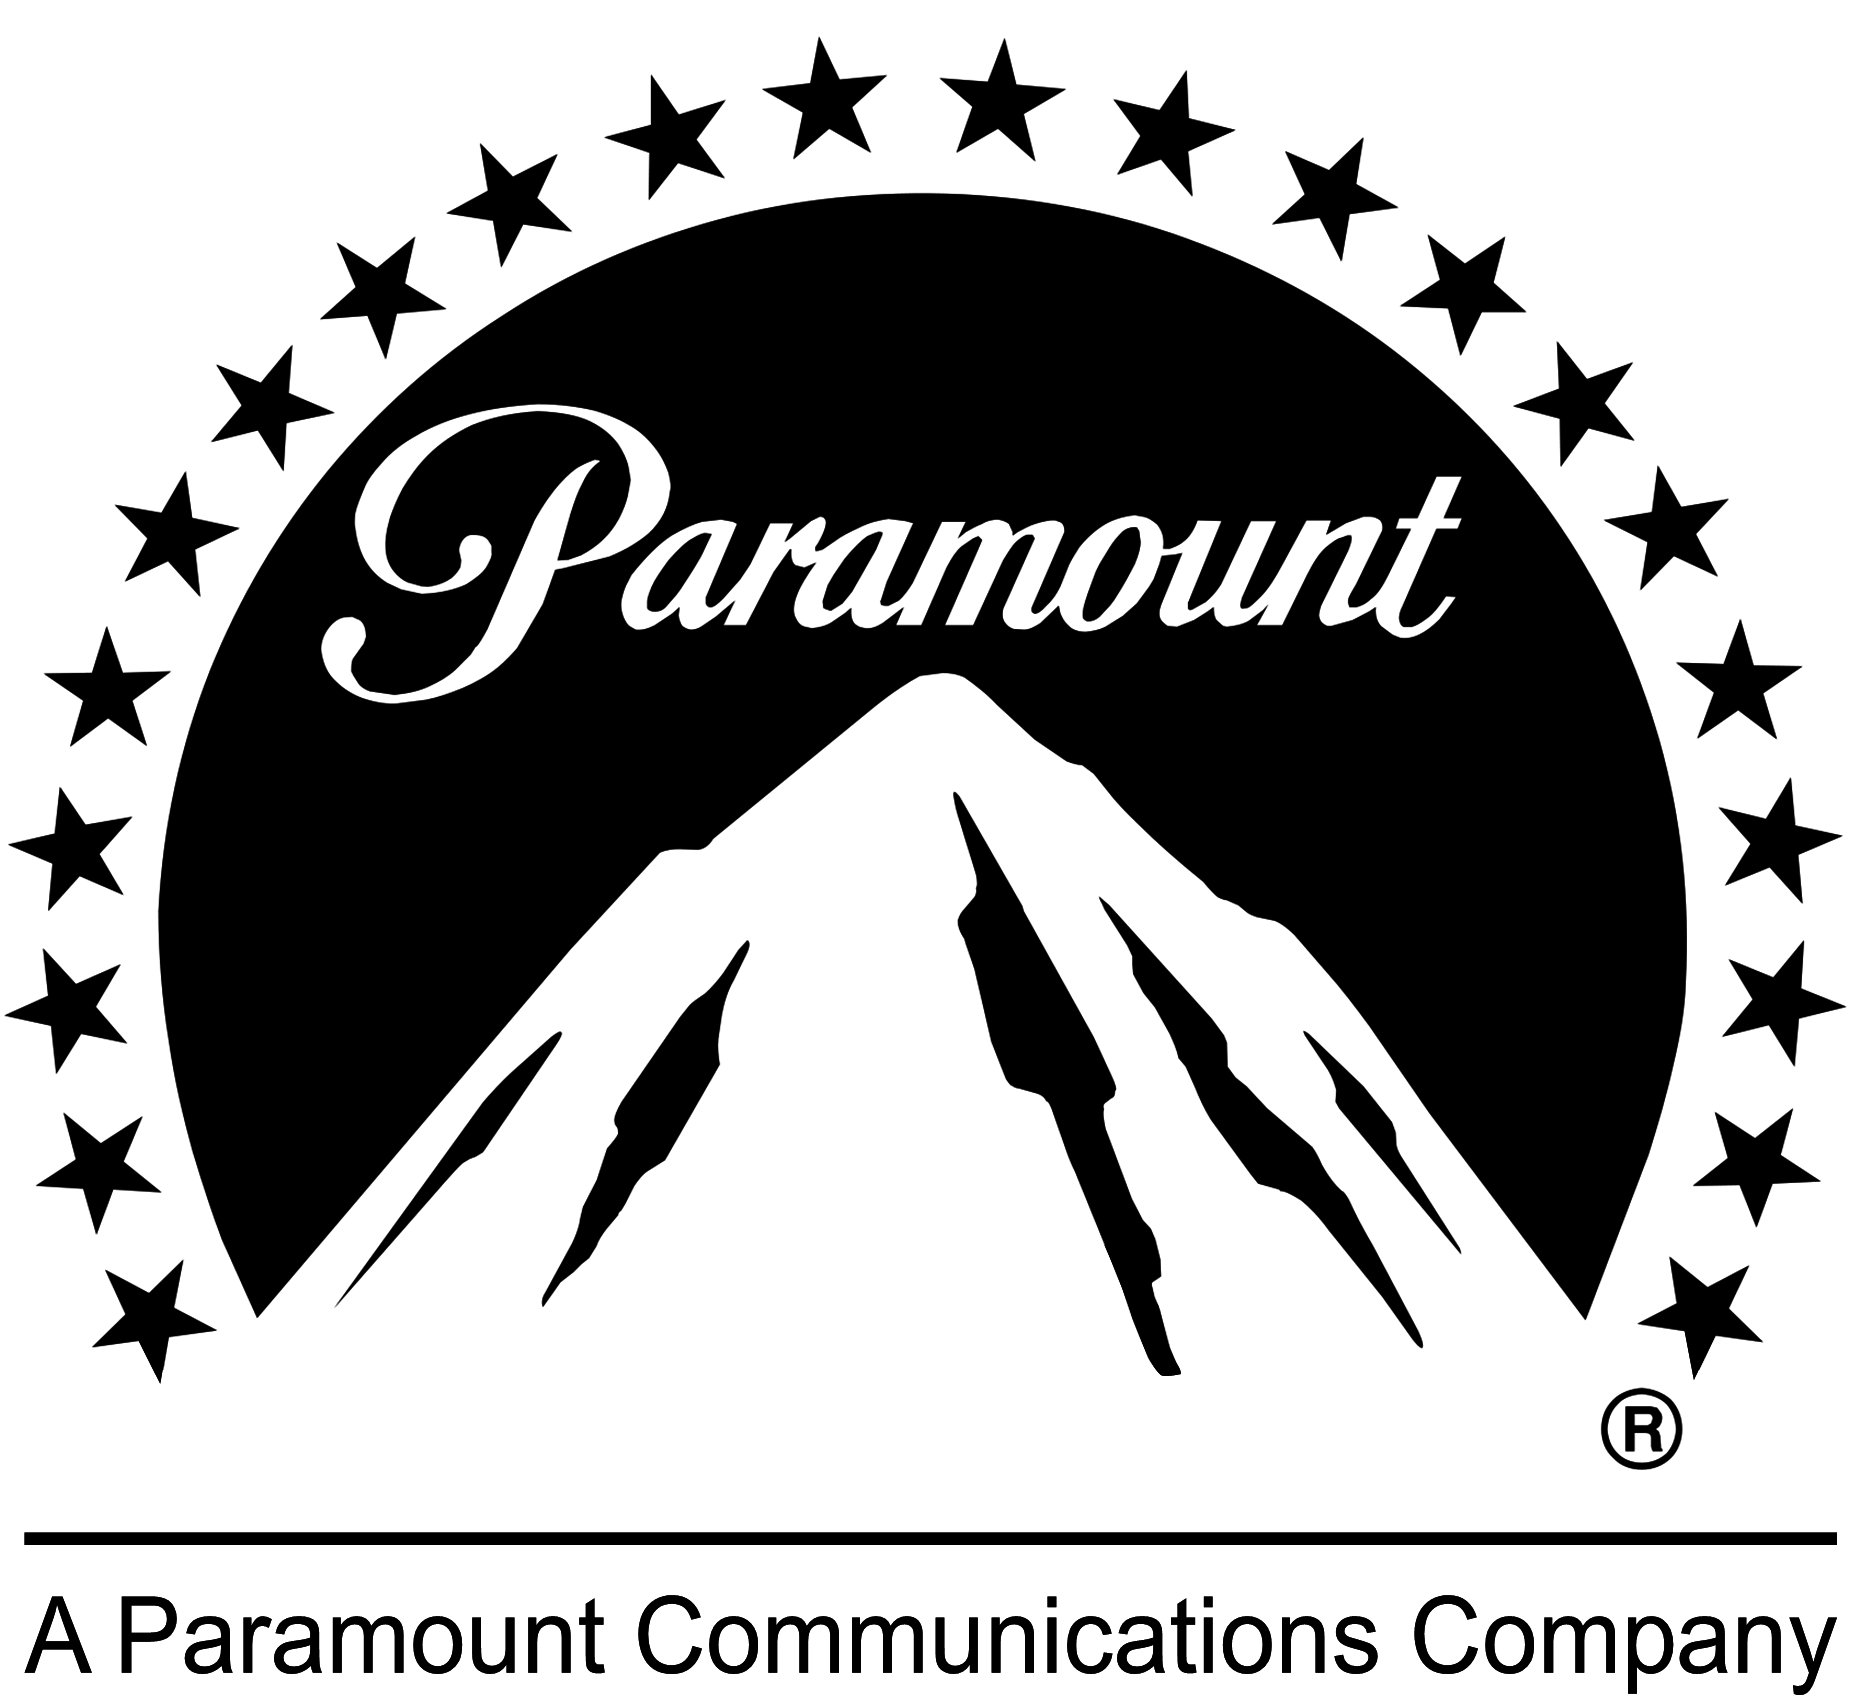 Paramount_1988_Communications.png